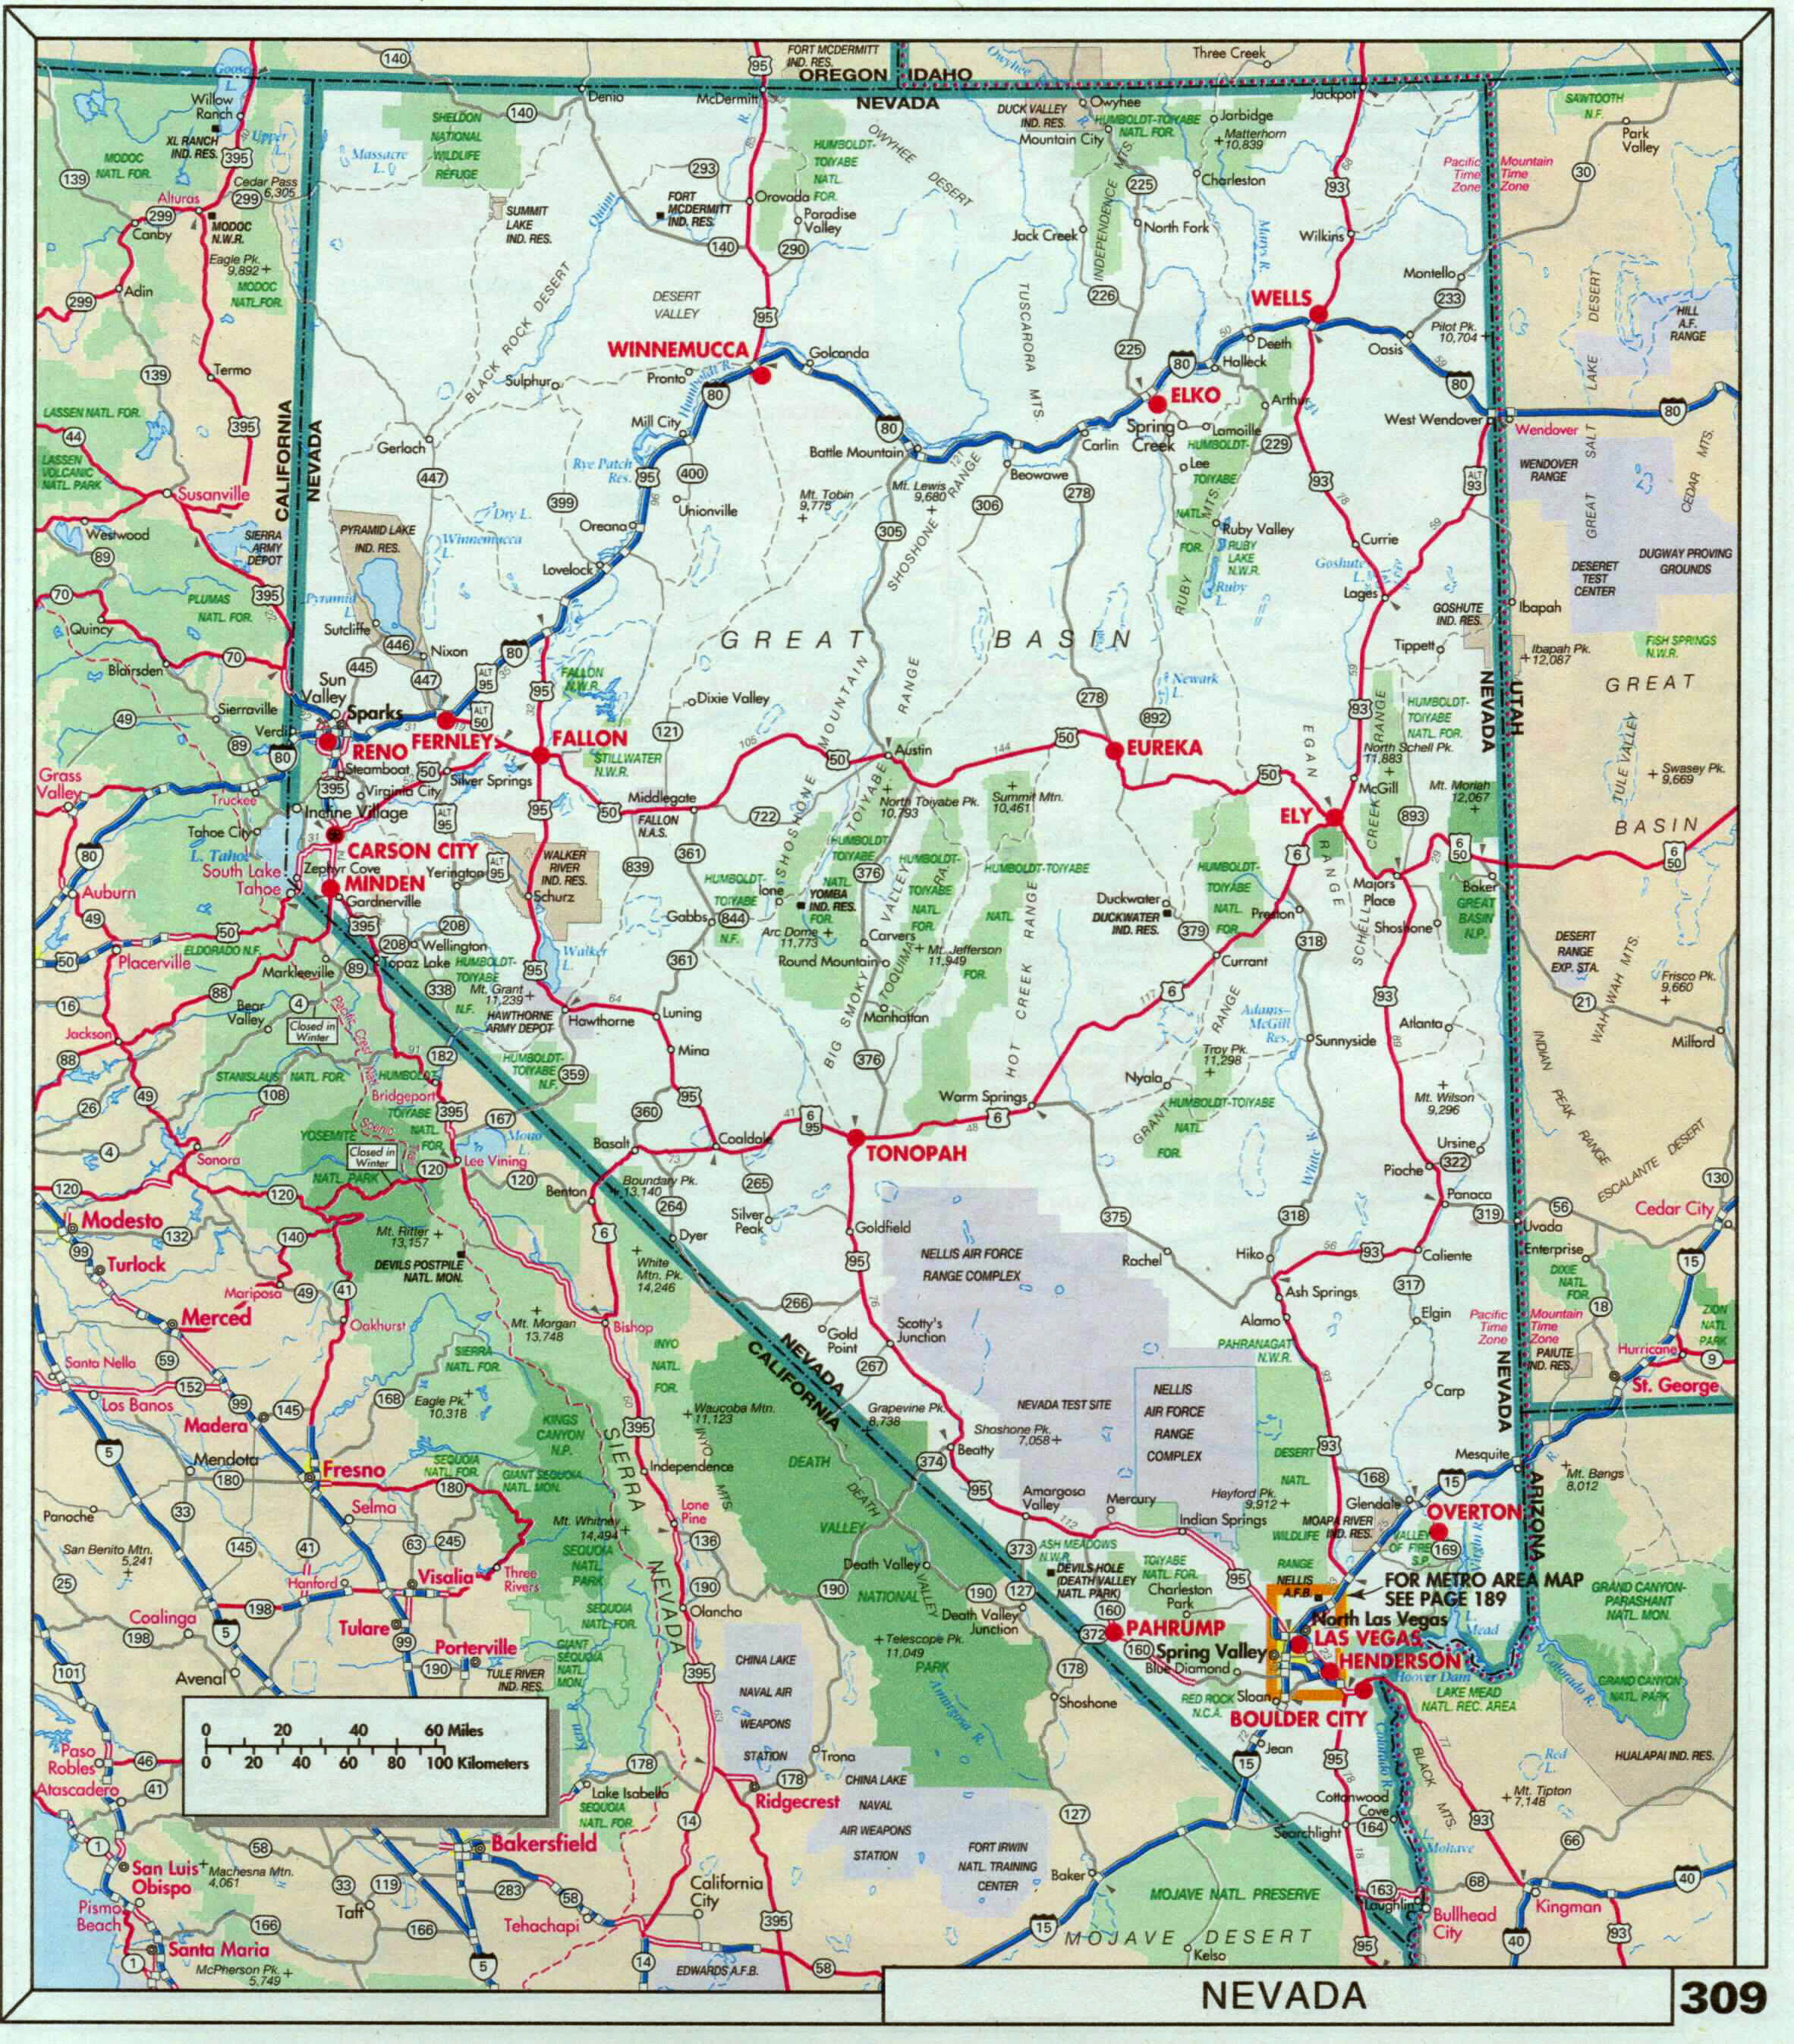 Large Detailed Roads And Highways Map Of Nevada State With - Road map of nevada